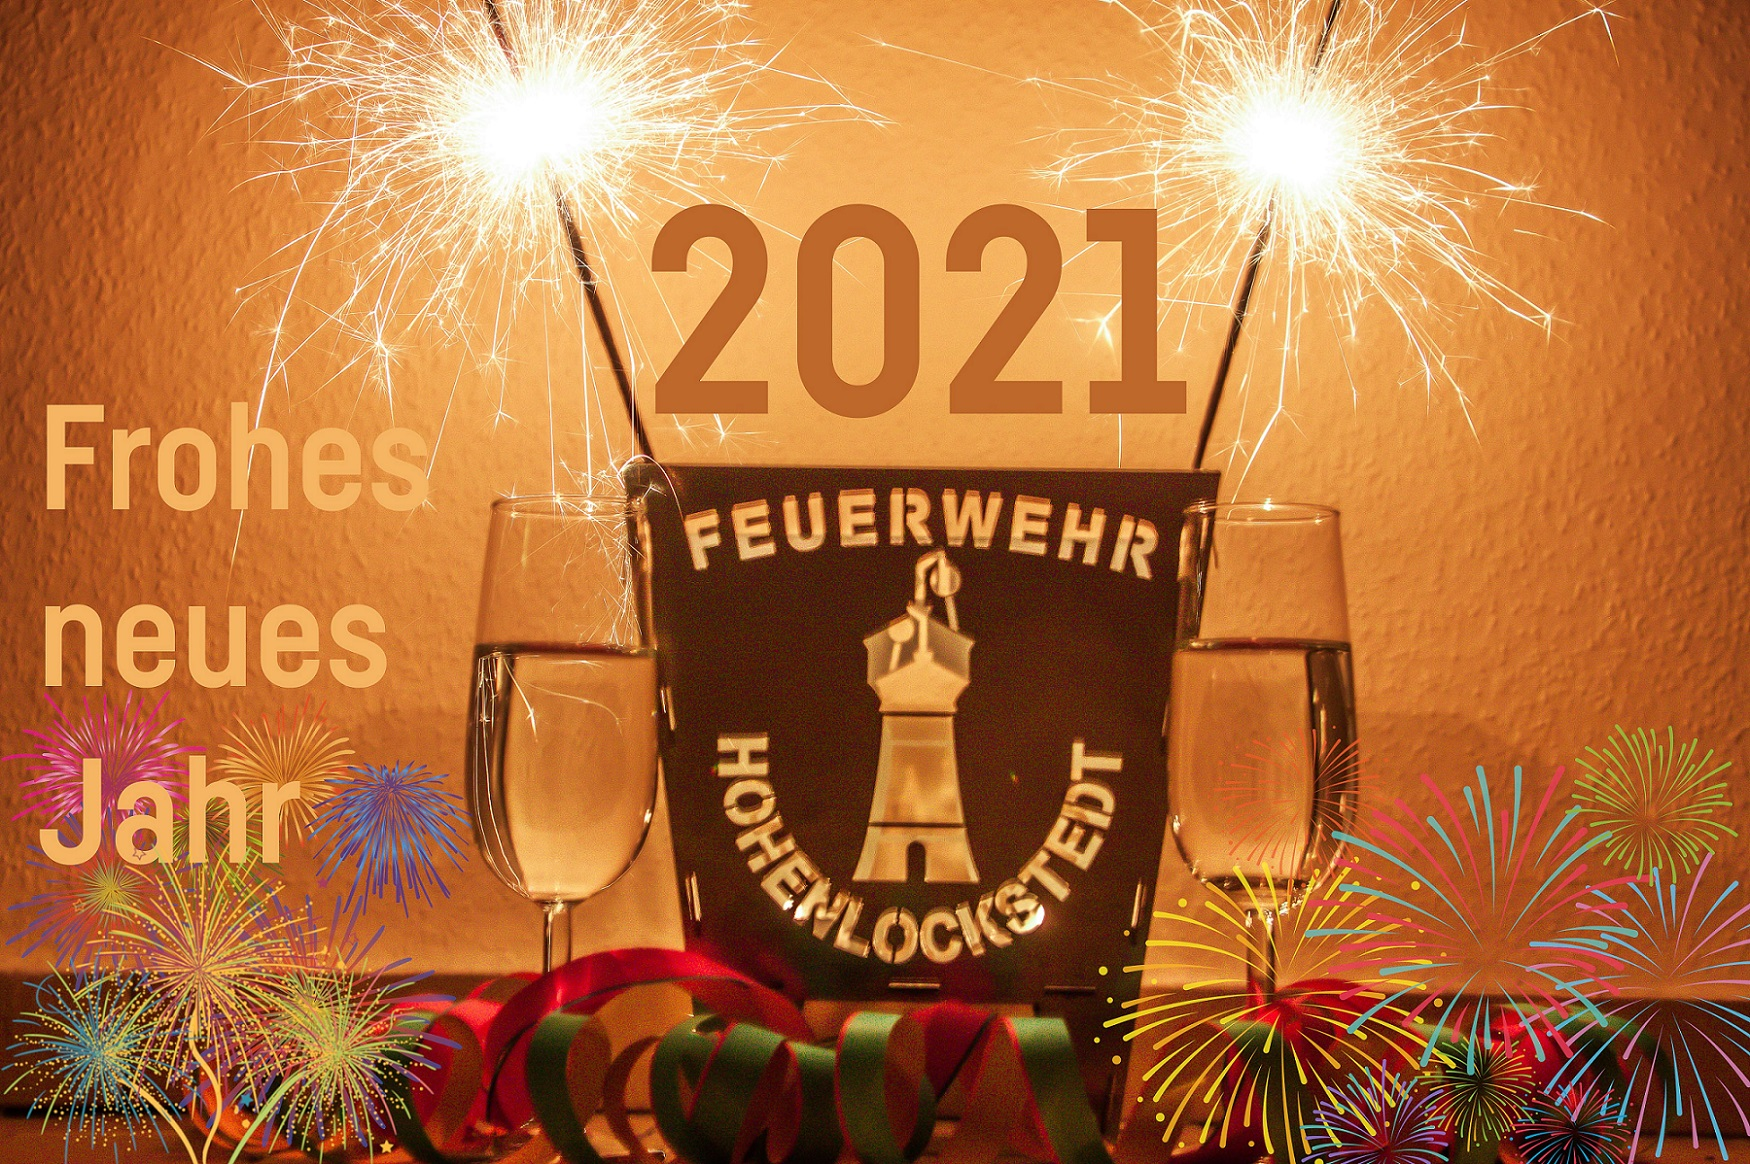 FrohesNeues2021-FF.jpg